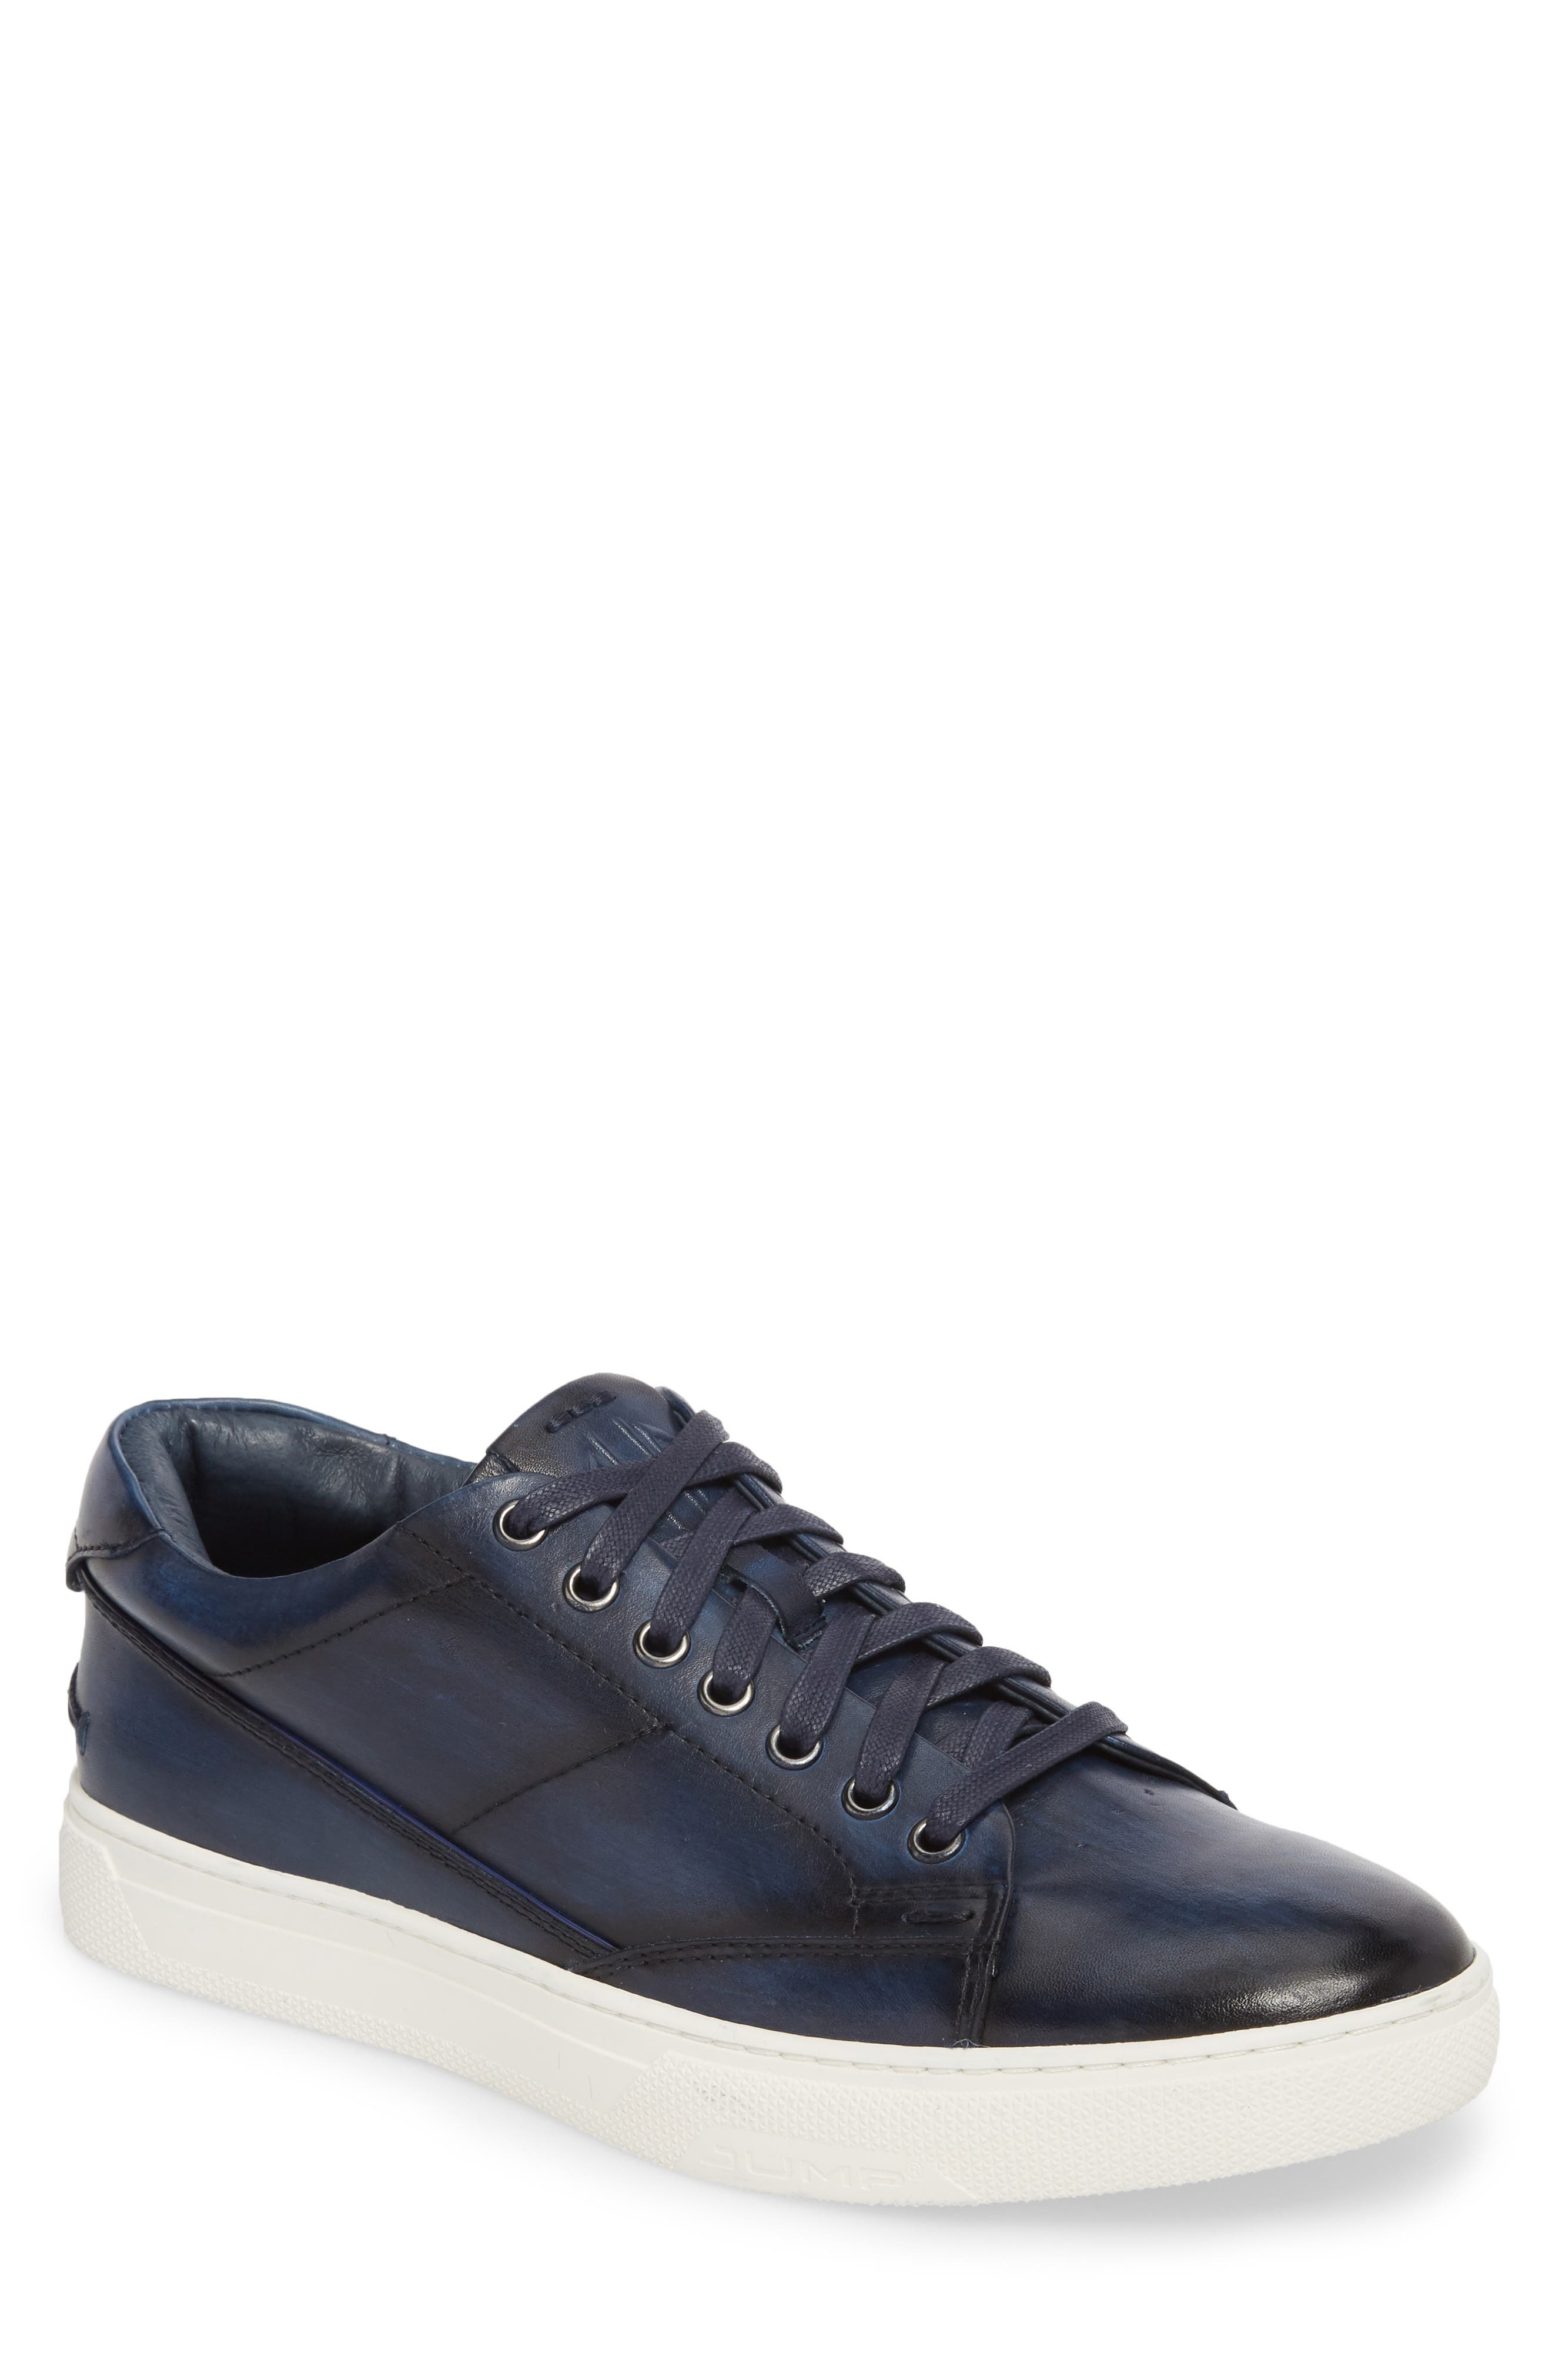 JUMP, Sweeney Low Top Sneaker, Main thumbnail 1, color, NAVY LEATHER